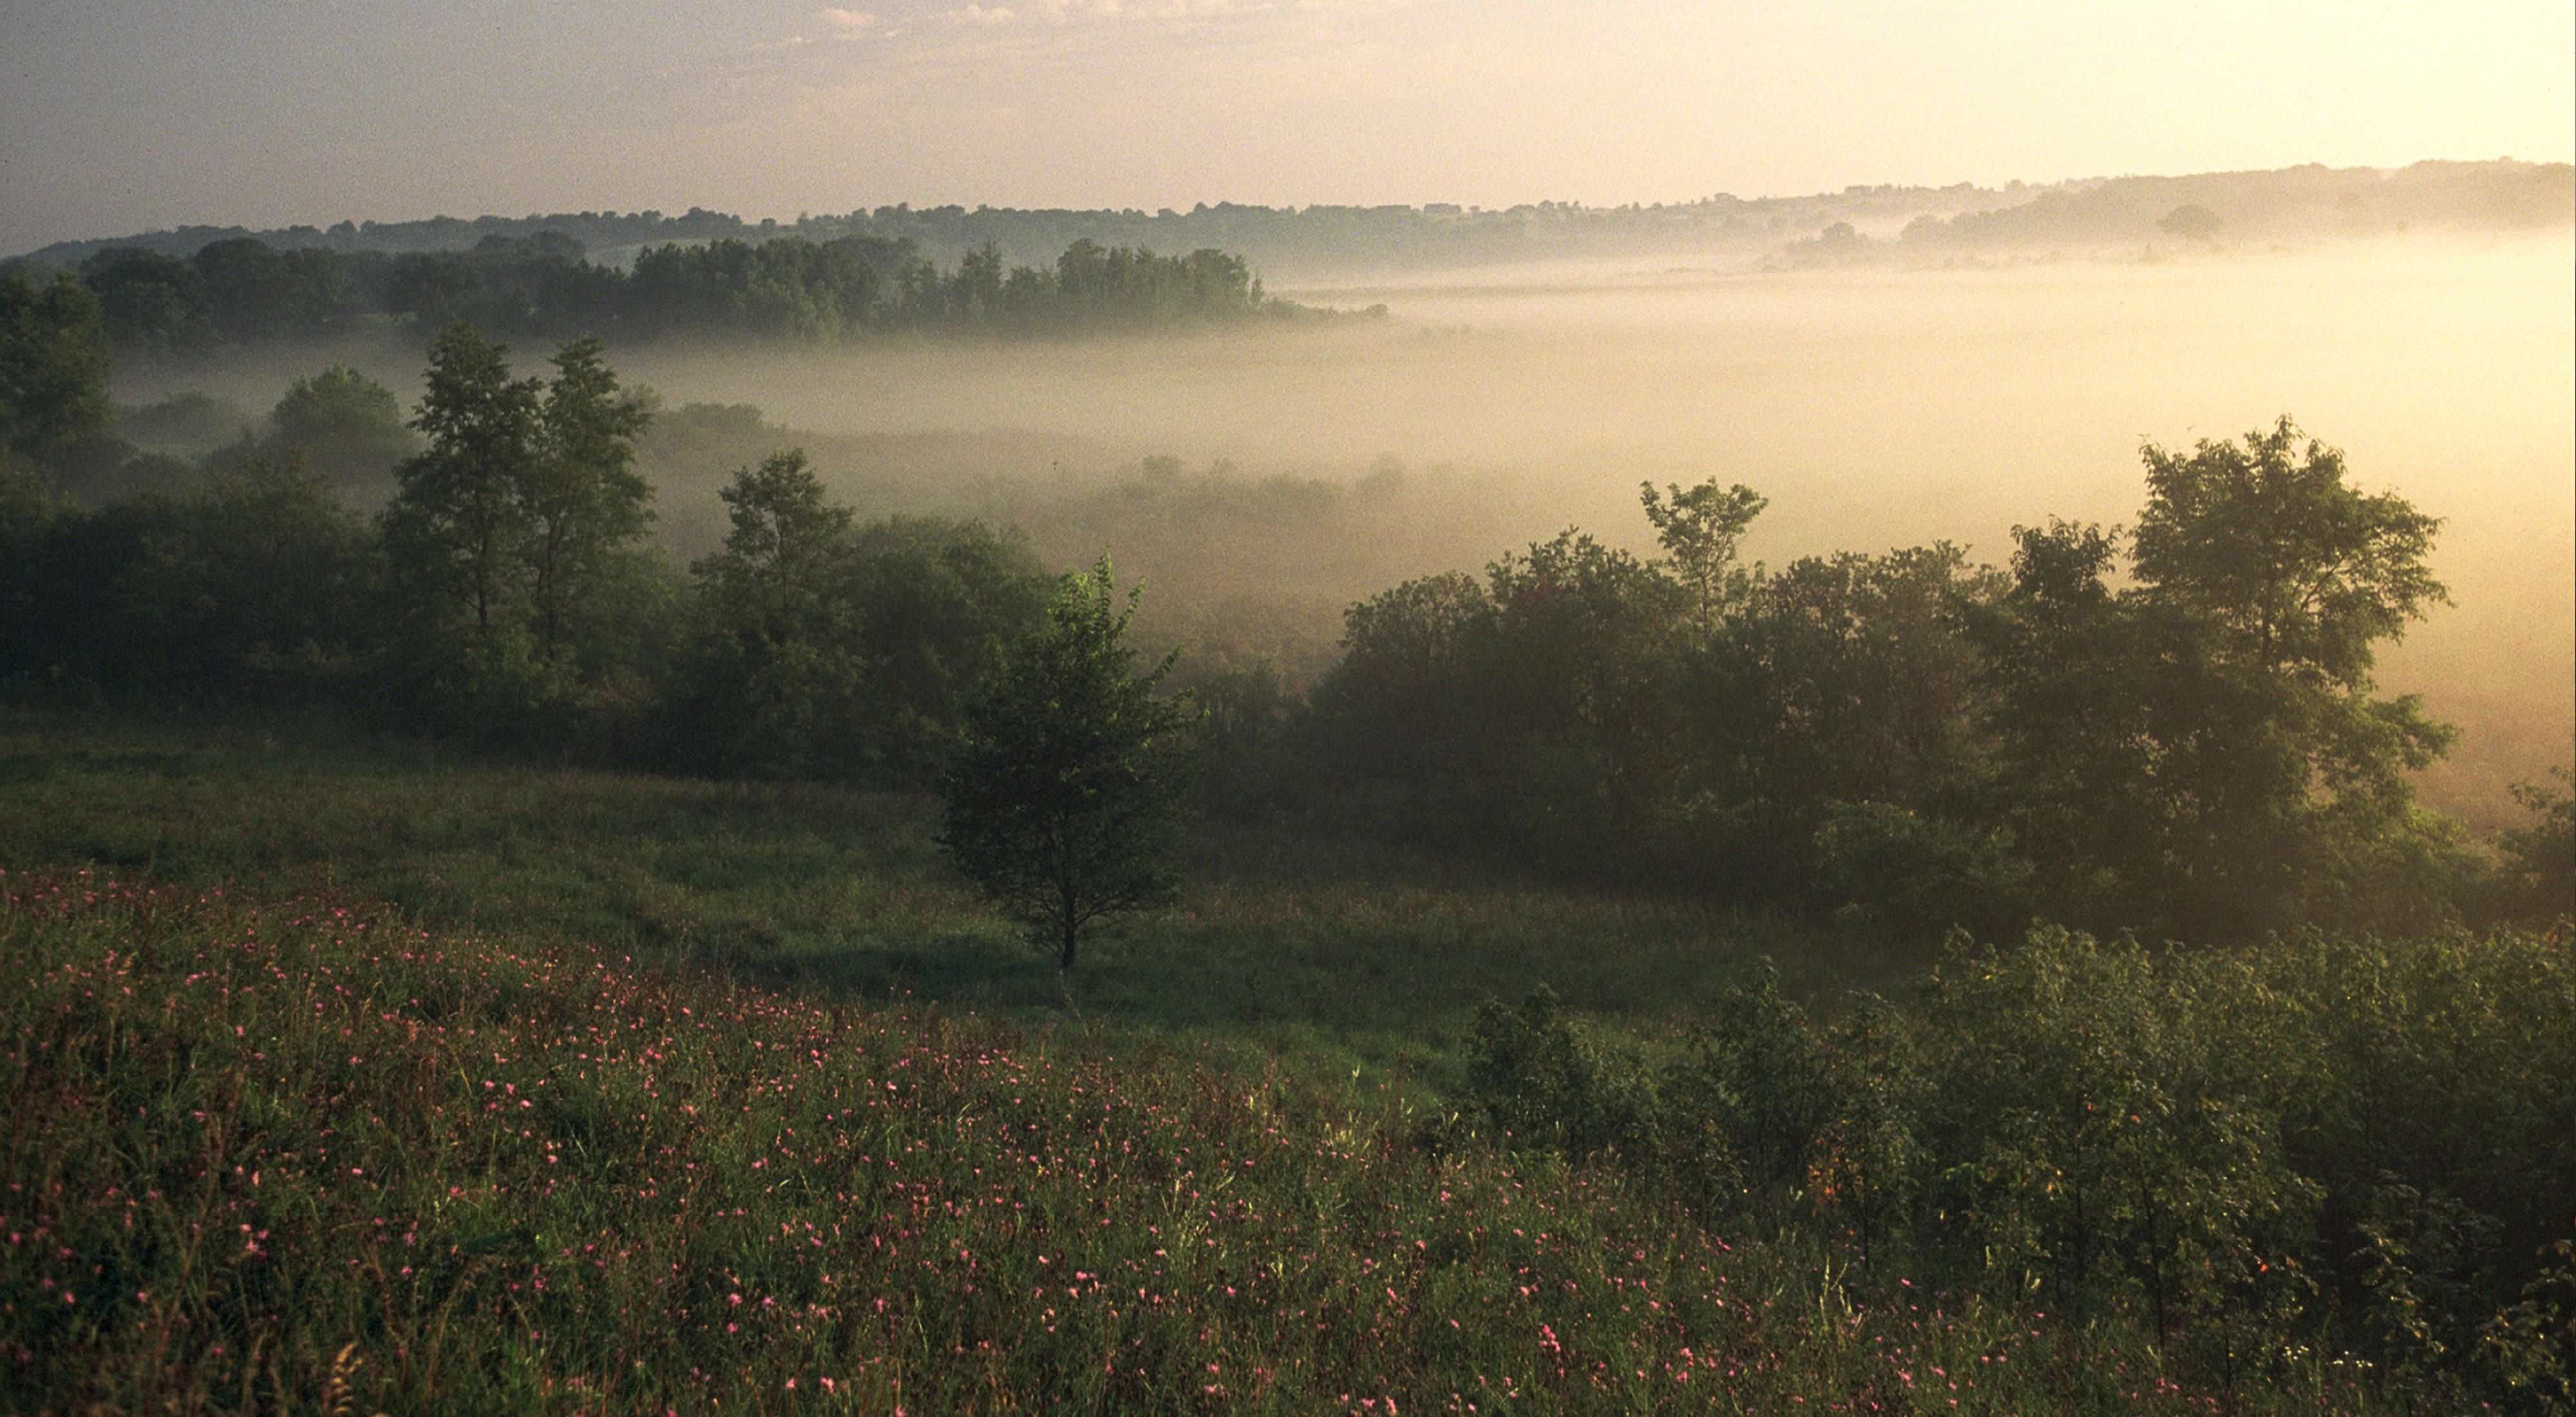 Foggy rolling in over the fen, with wildflowers and trees in the foreground.